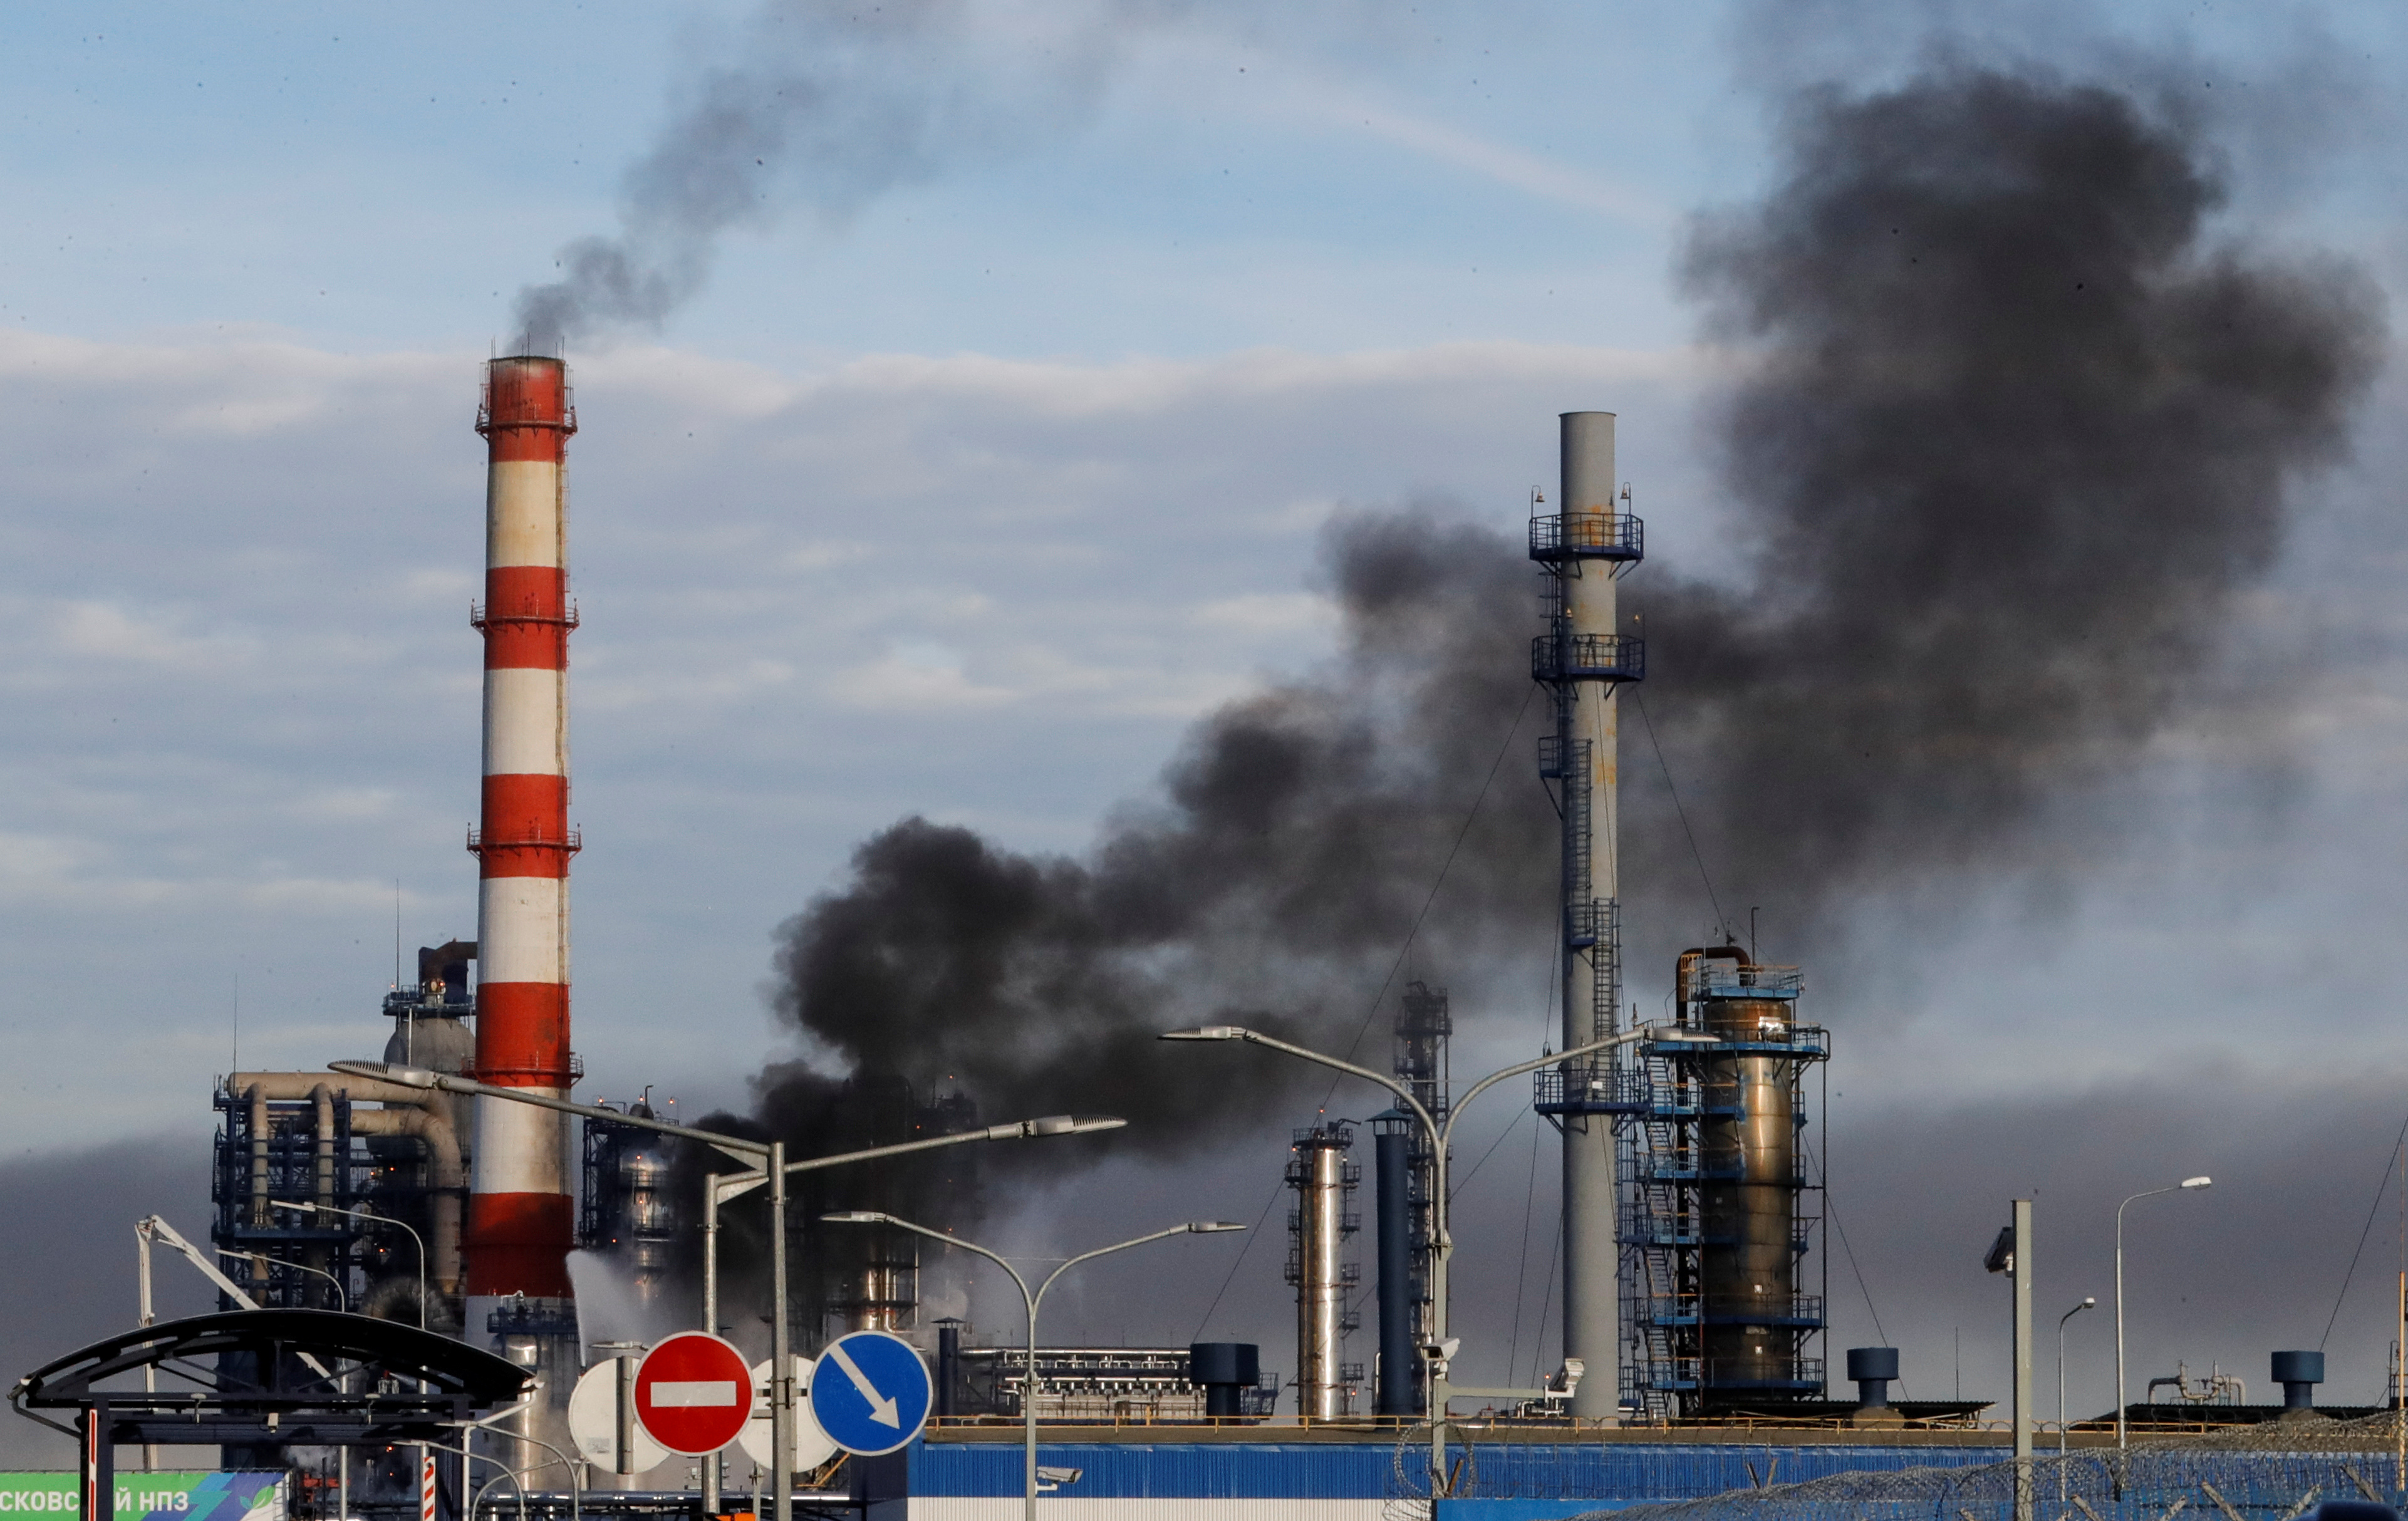 Smoke billows from a fire at oil refinery, owned by Russian oil producer Gazprom Neft, in Moscow, Russia, November 17, 2018.